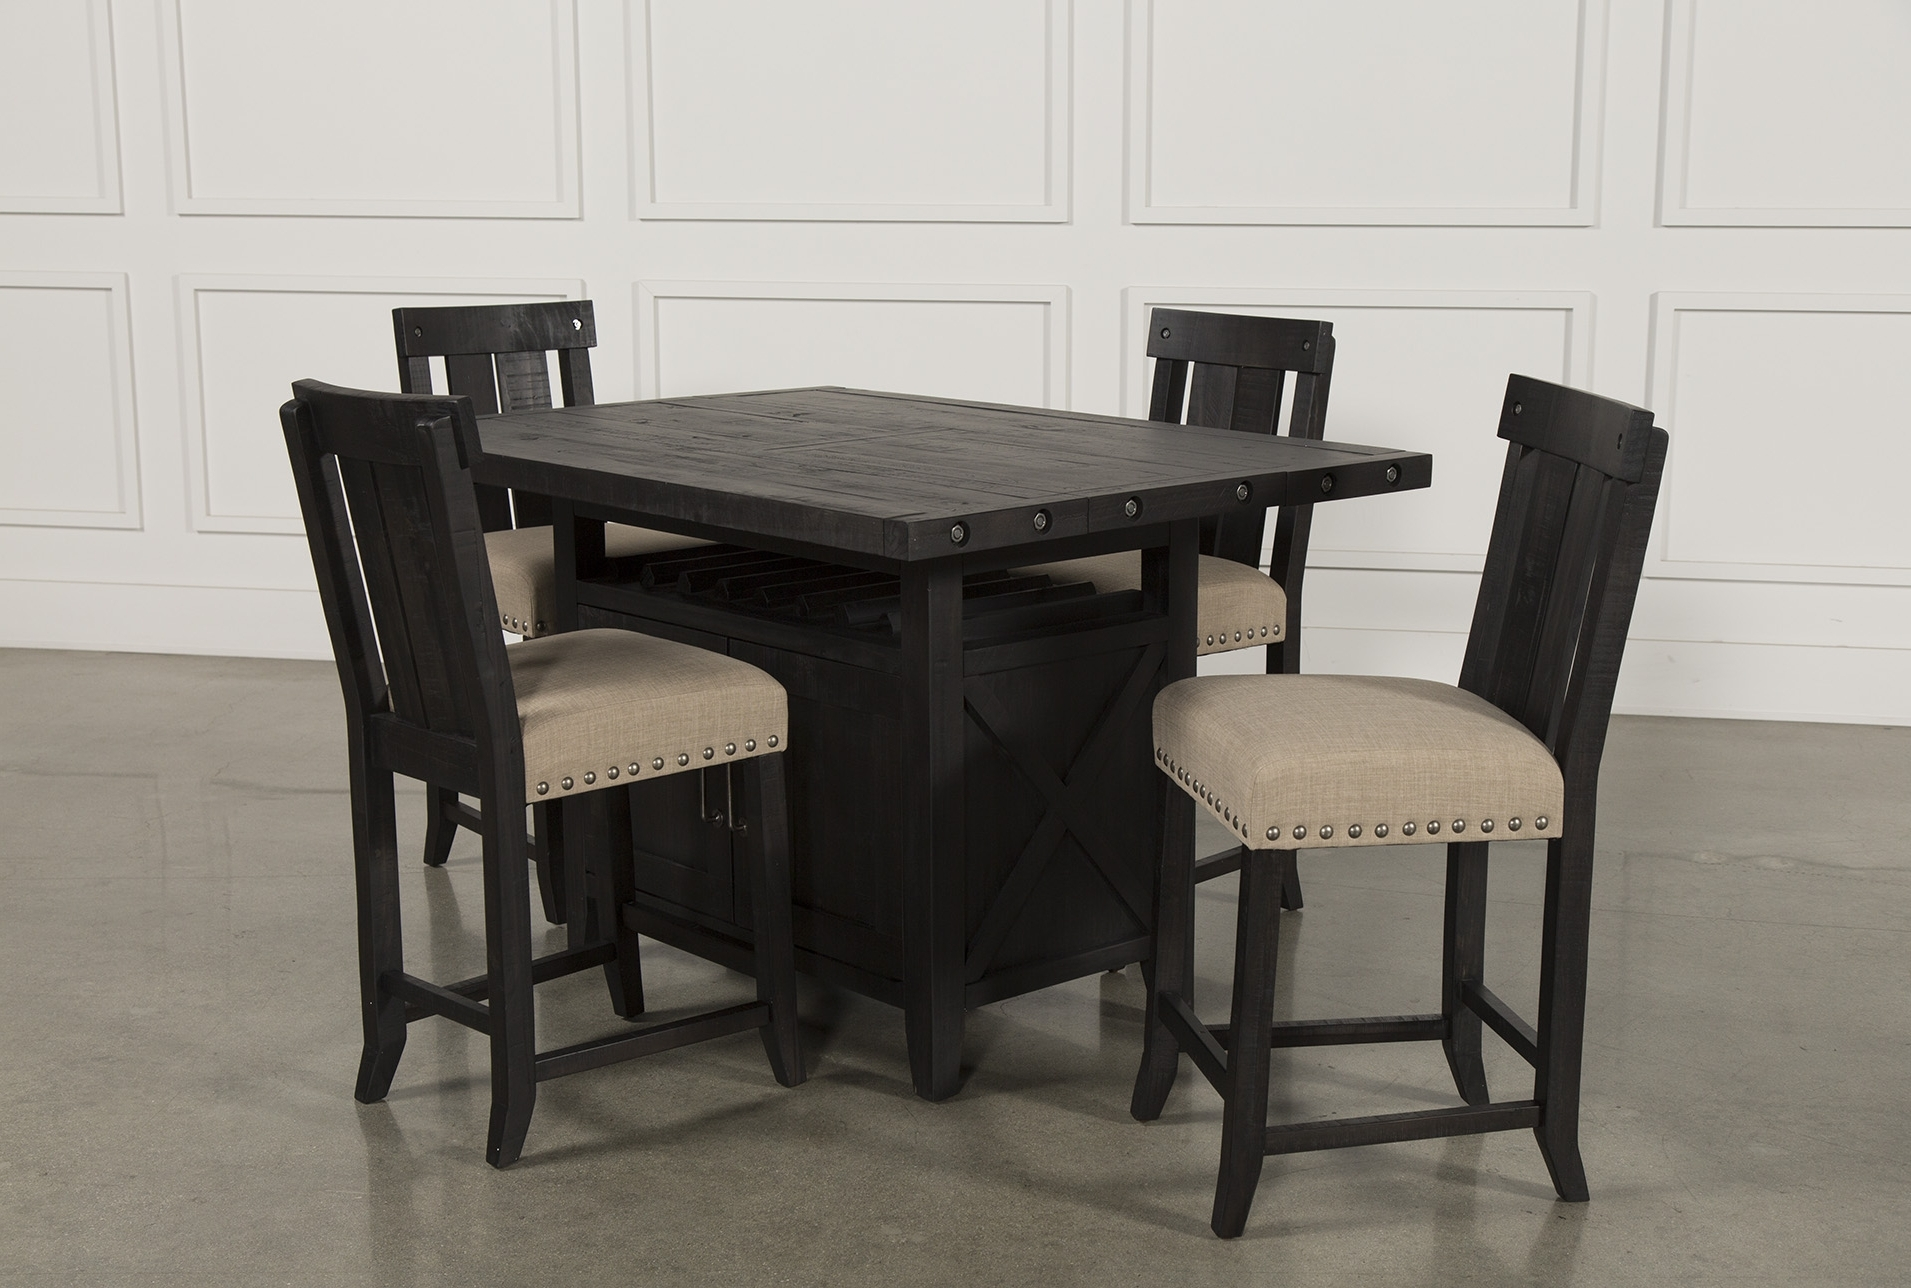 Global Furniture Bar Table Black In Famous Jaxon Grey 5 Piece Round Extension Dining Sets With Upholstered Chairs (View 21 of 25)